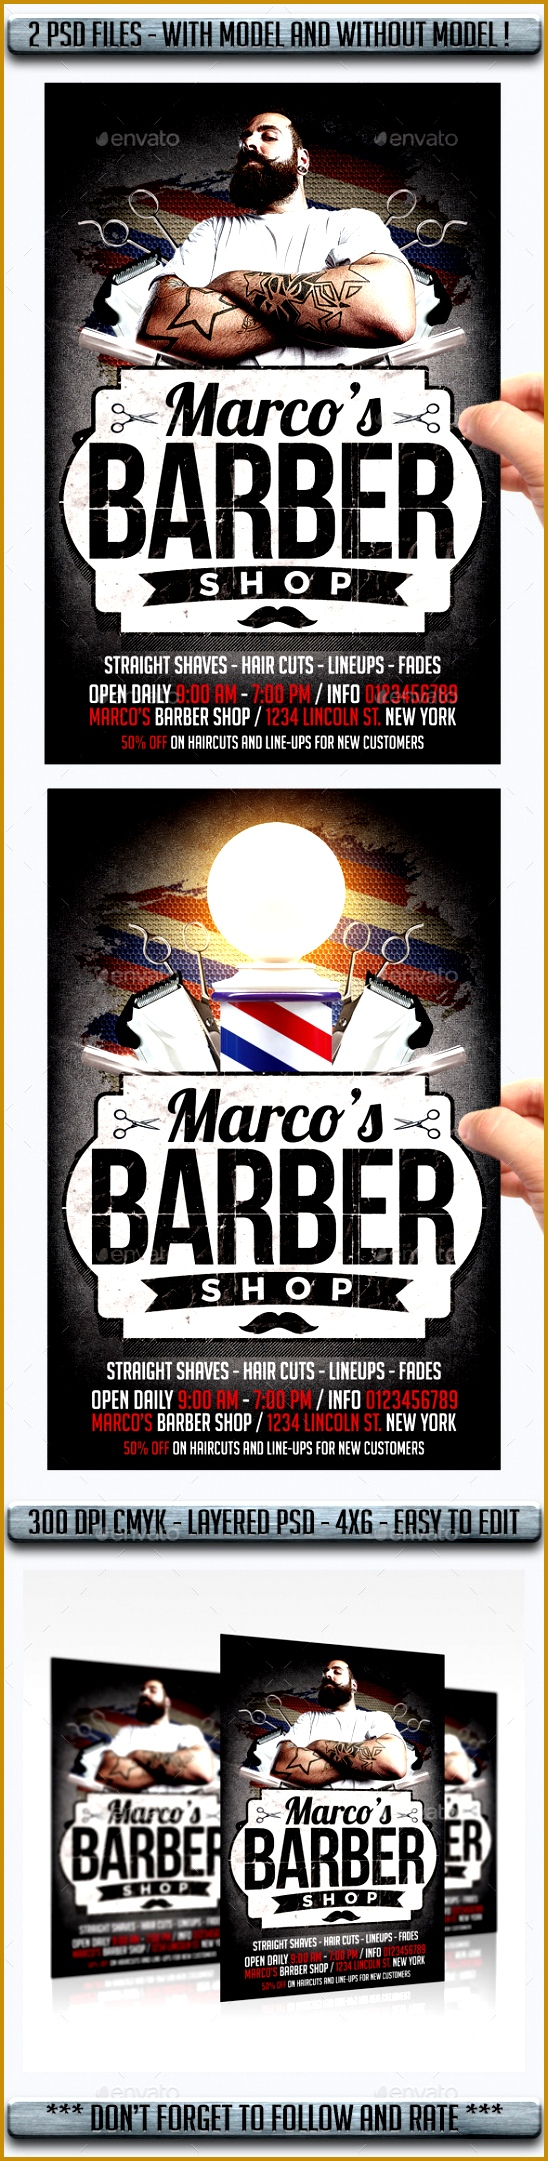 15 excellent flyer templates for your next event Barbershop 2161548